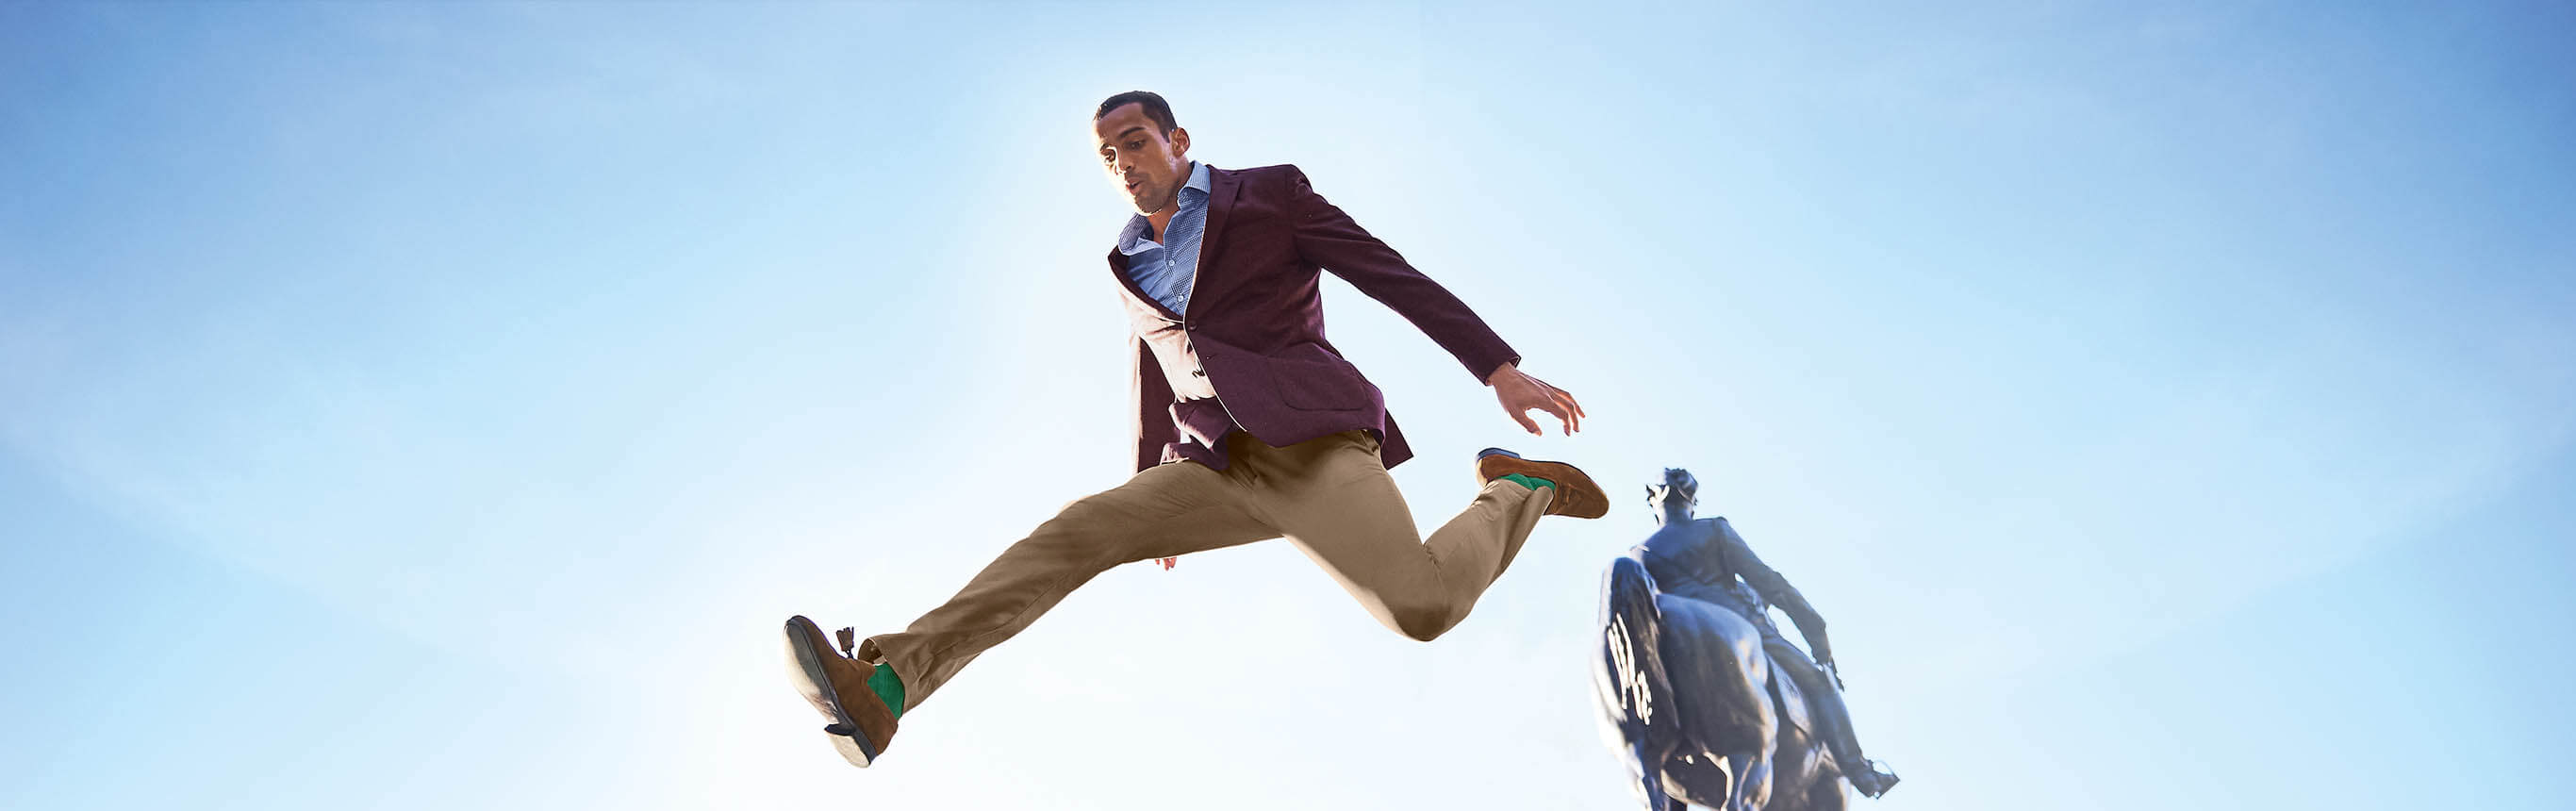 Man leaping over monument